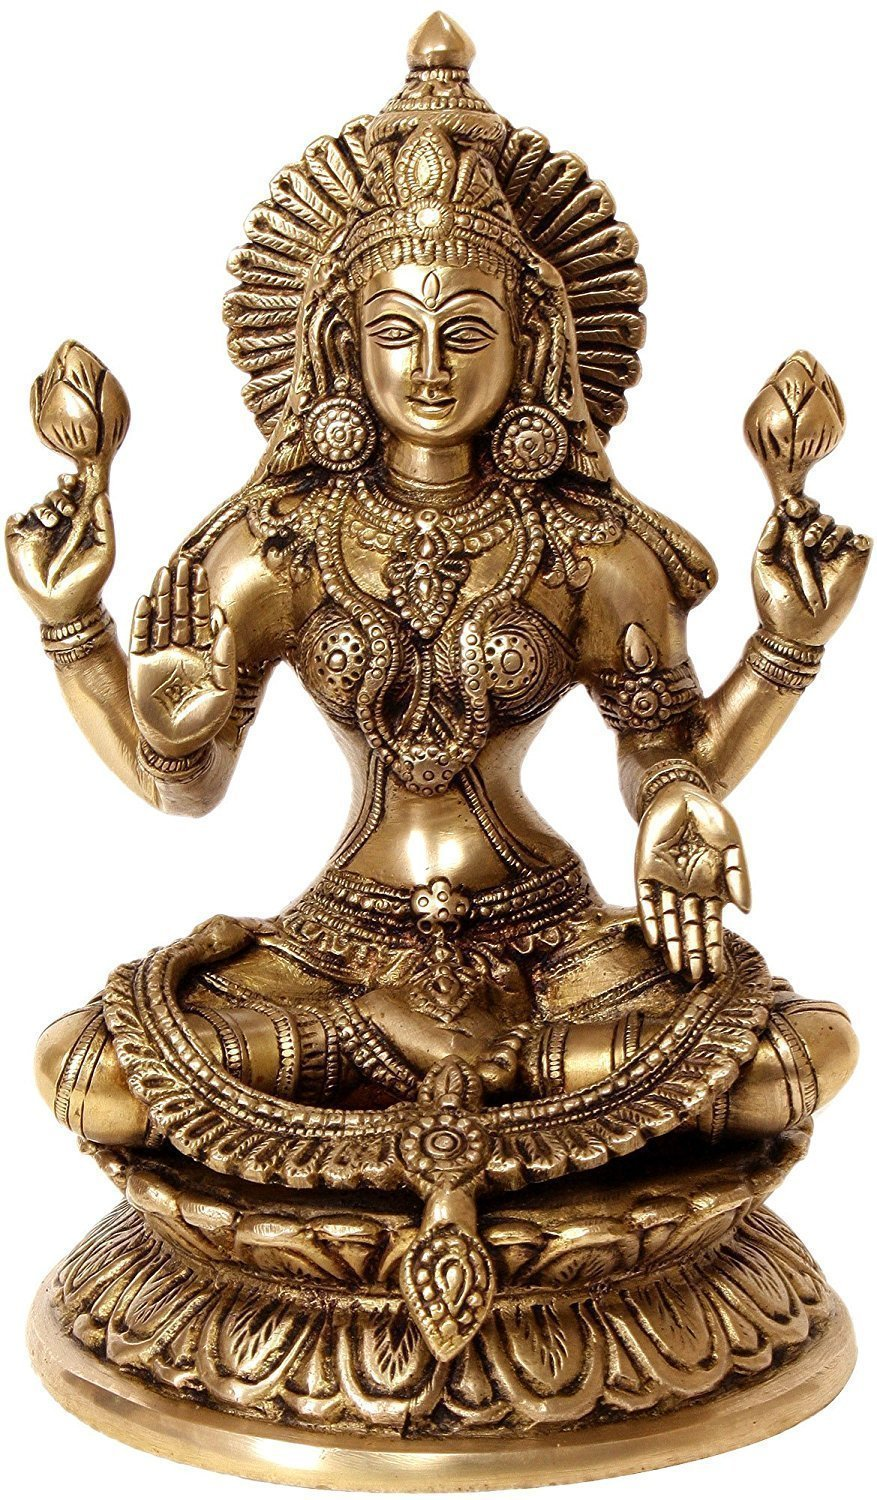 Aone India Large 9'' Laxmi Statue Goddess Brass Lakshmi Hindu Idol Religious Metal Gift Home Decor + Cash Envelope (Pack Of 10)